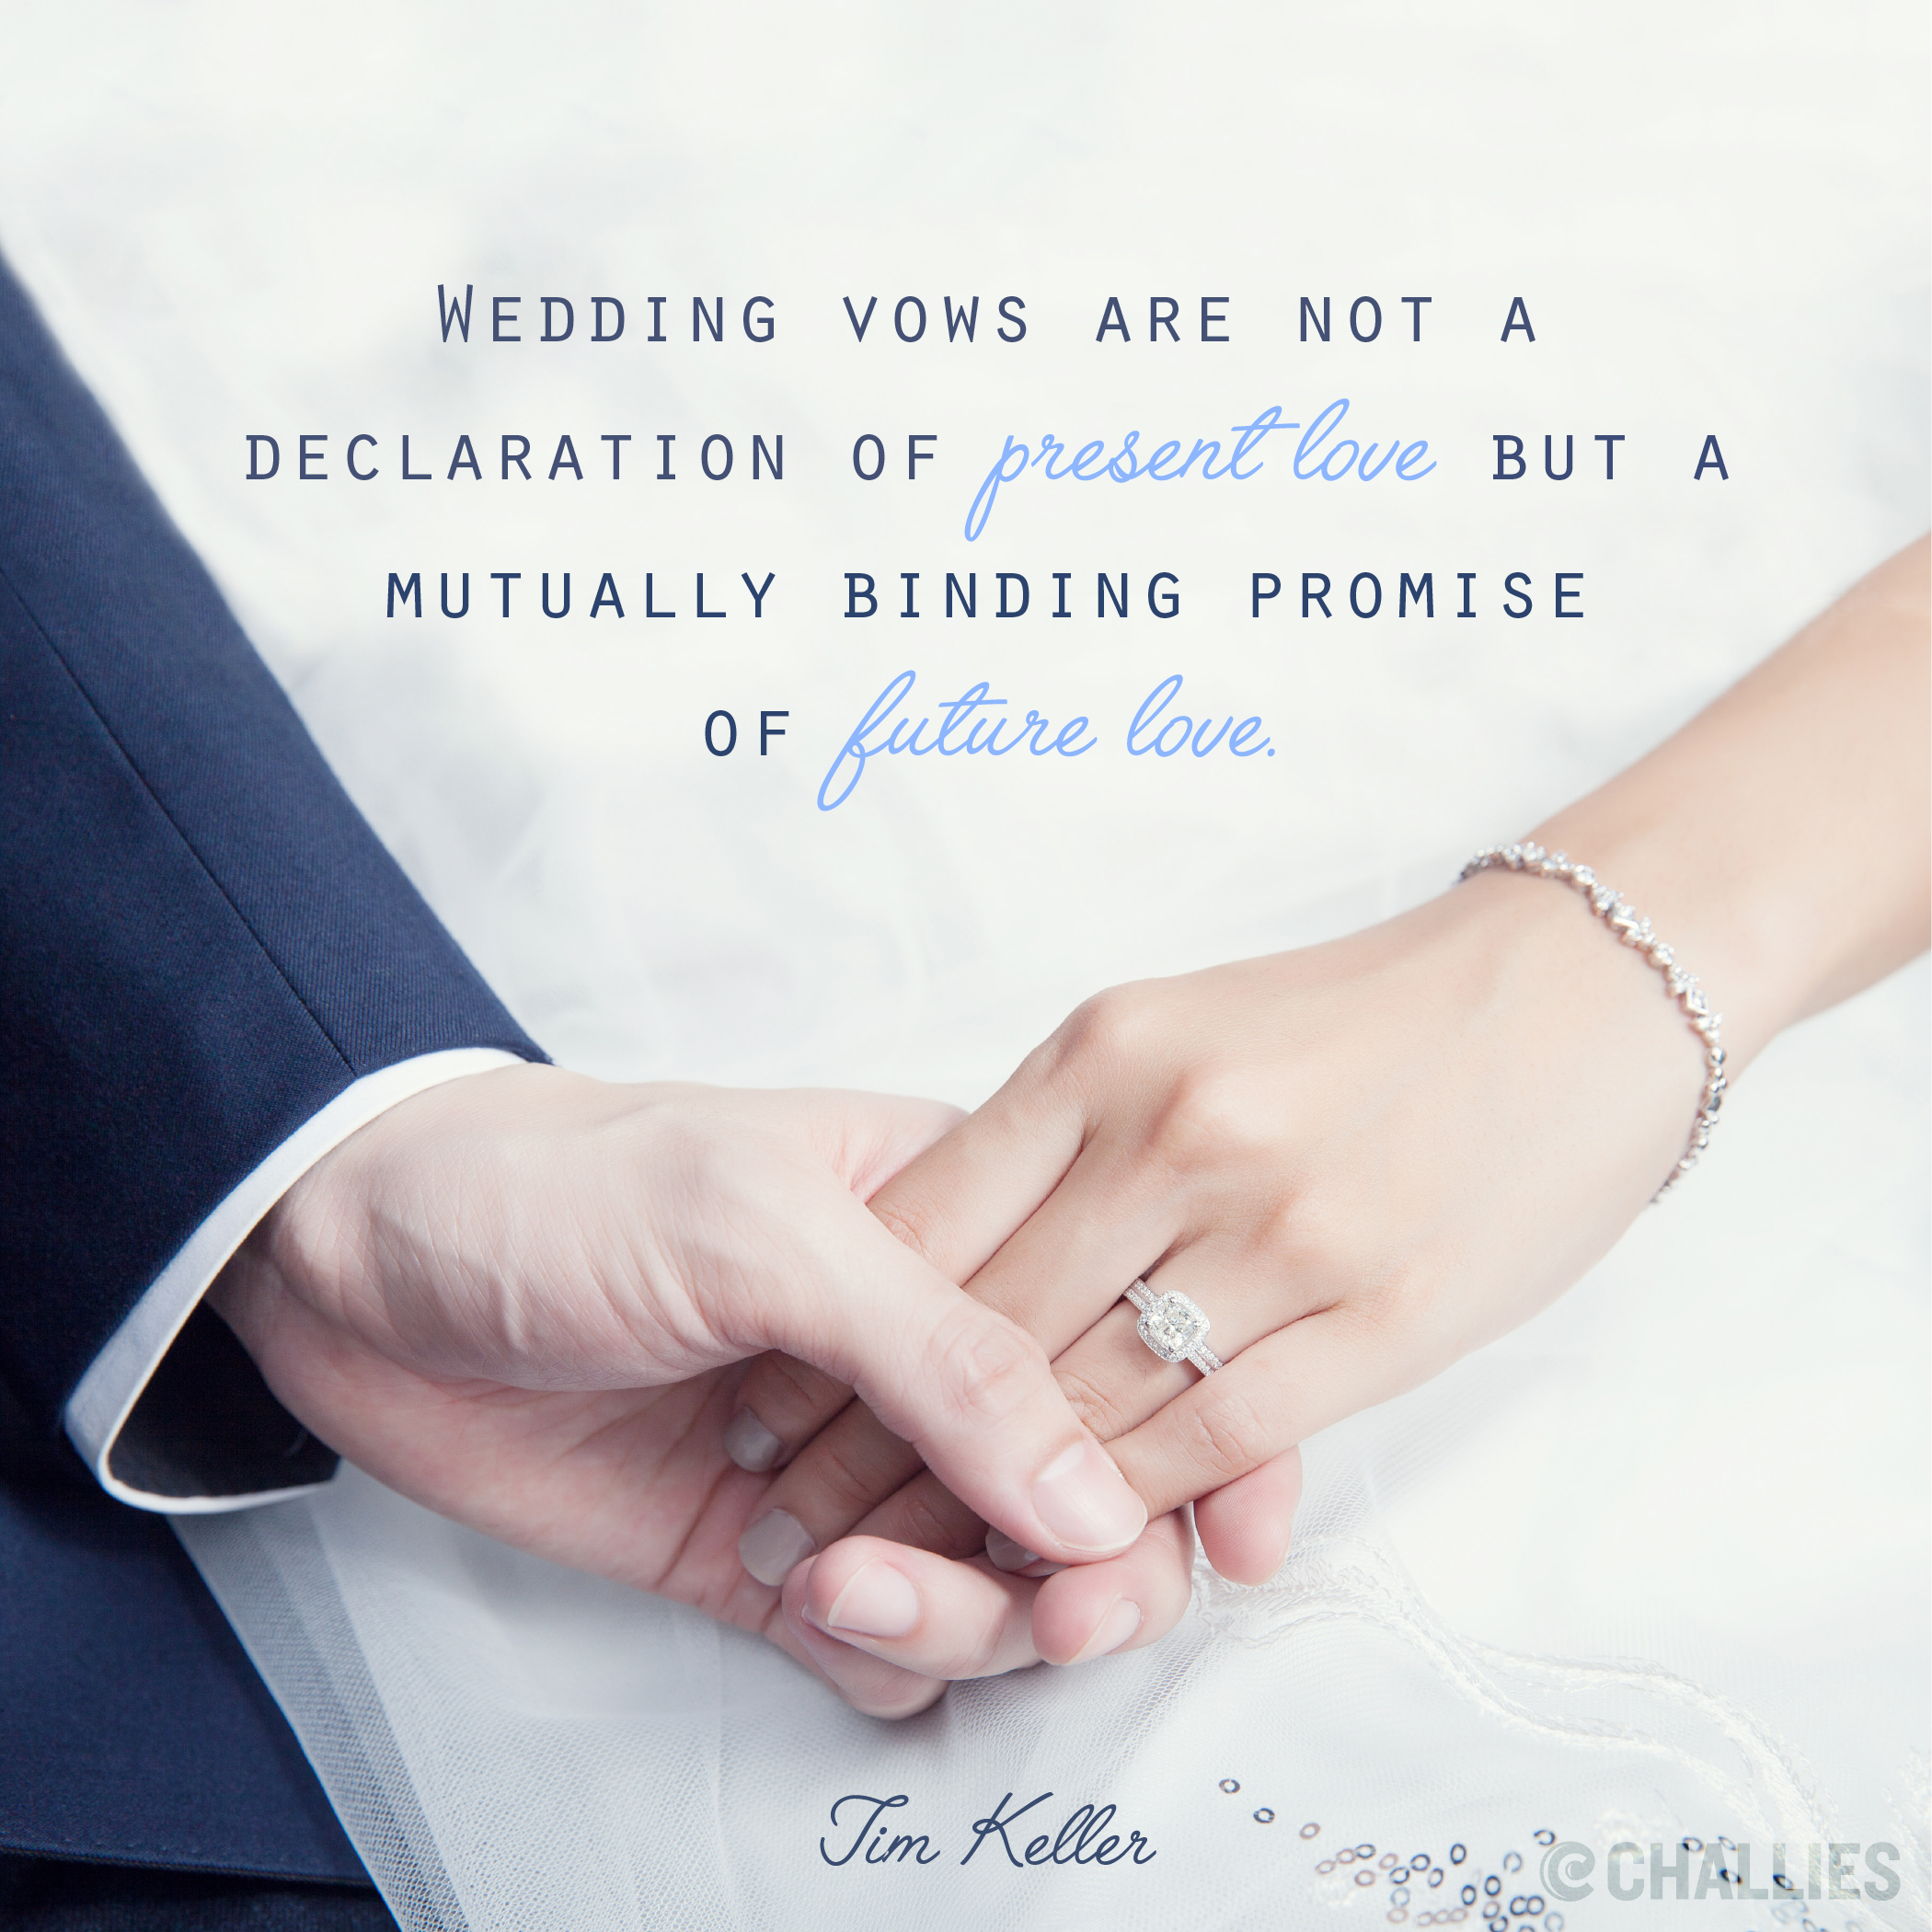 Wedding Vows Are Not A Declaration Of Present Love But Mutually Binding Promise